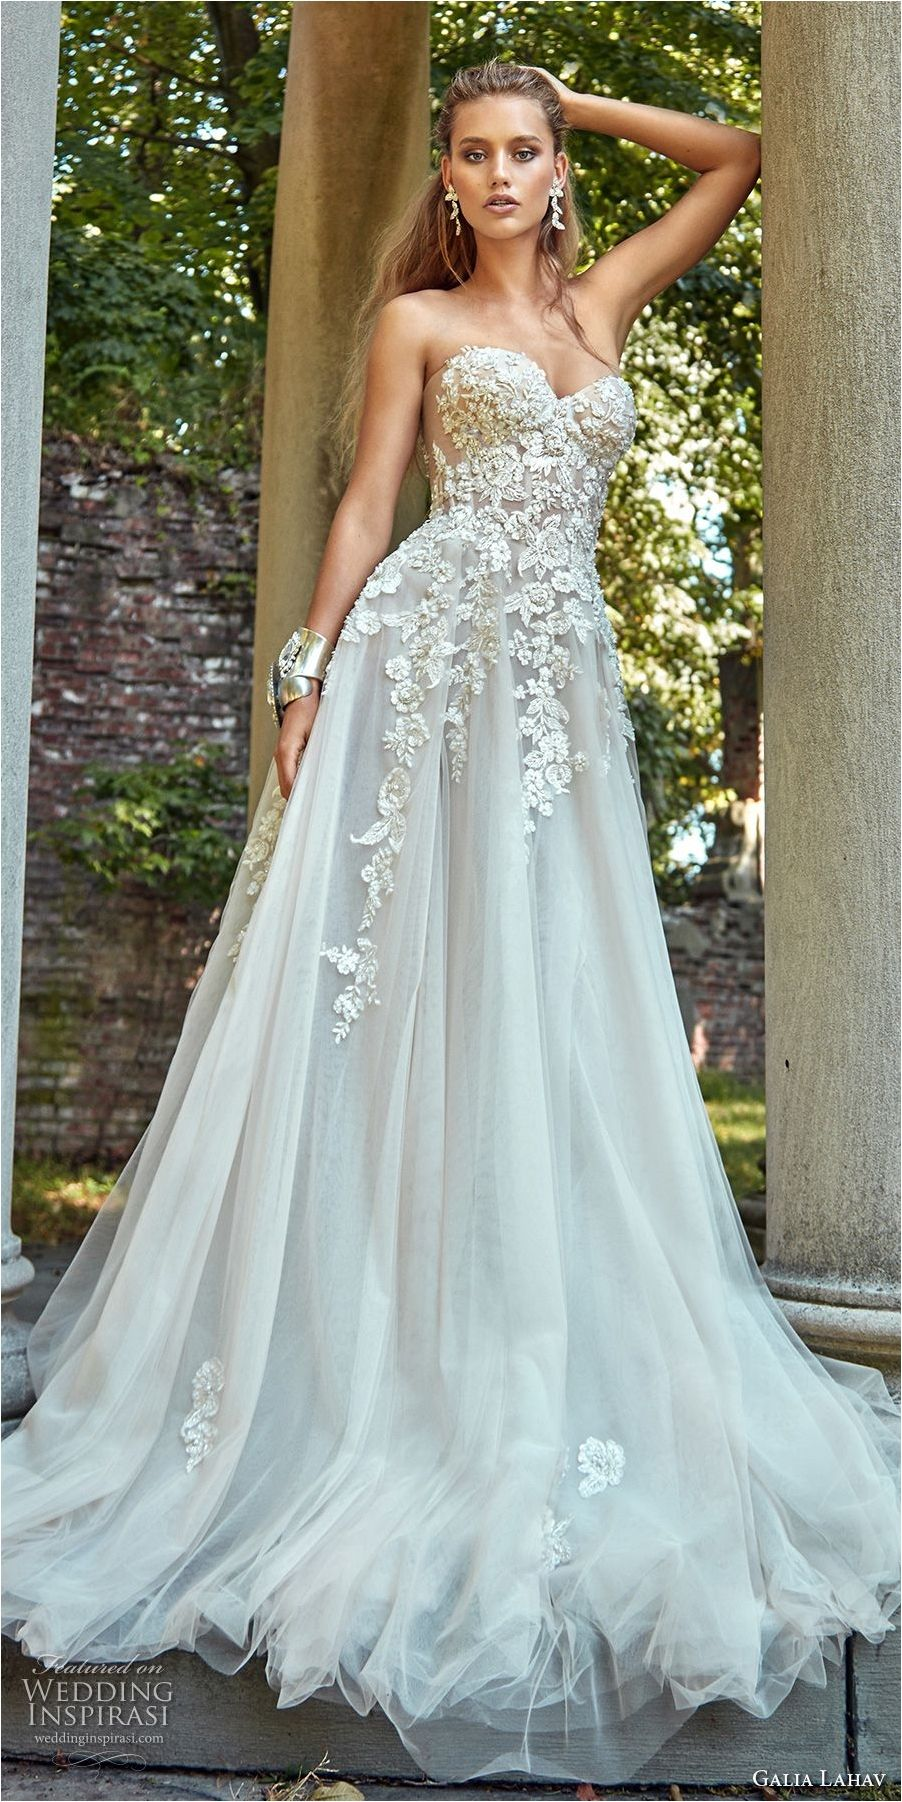 Lace Sweetheart Wedding Dresses For Your Spring Wedding | Sweetheart ...